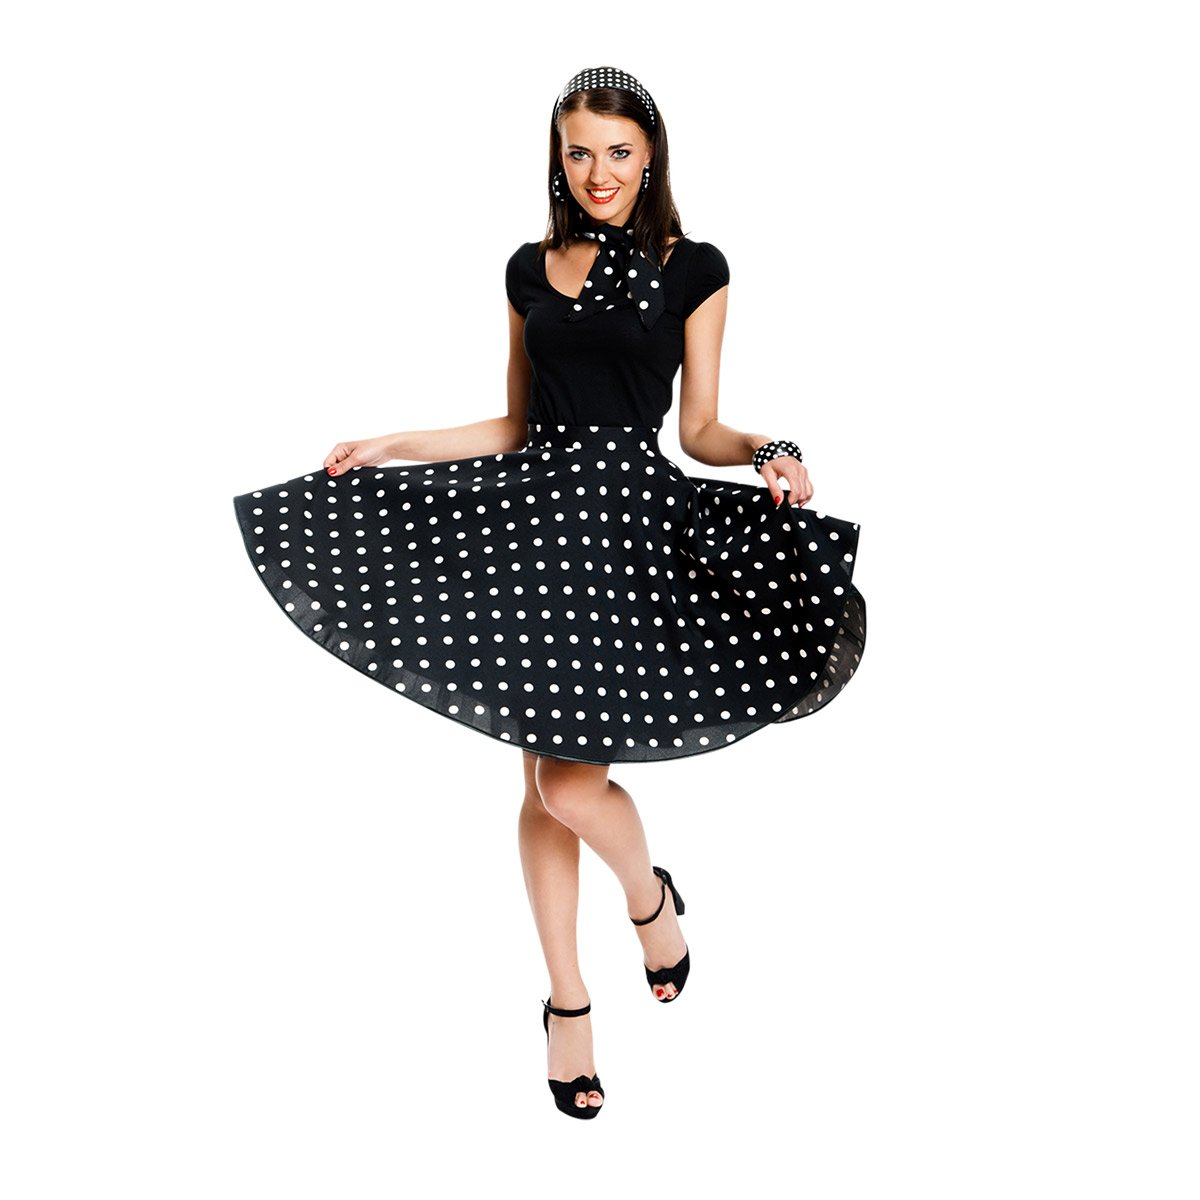 Rocker style frauen freizeit outfits born to rock bei dieses outfit f r damen ist ideal f r - Rockabilly outfit damen ...